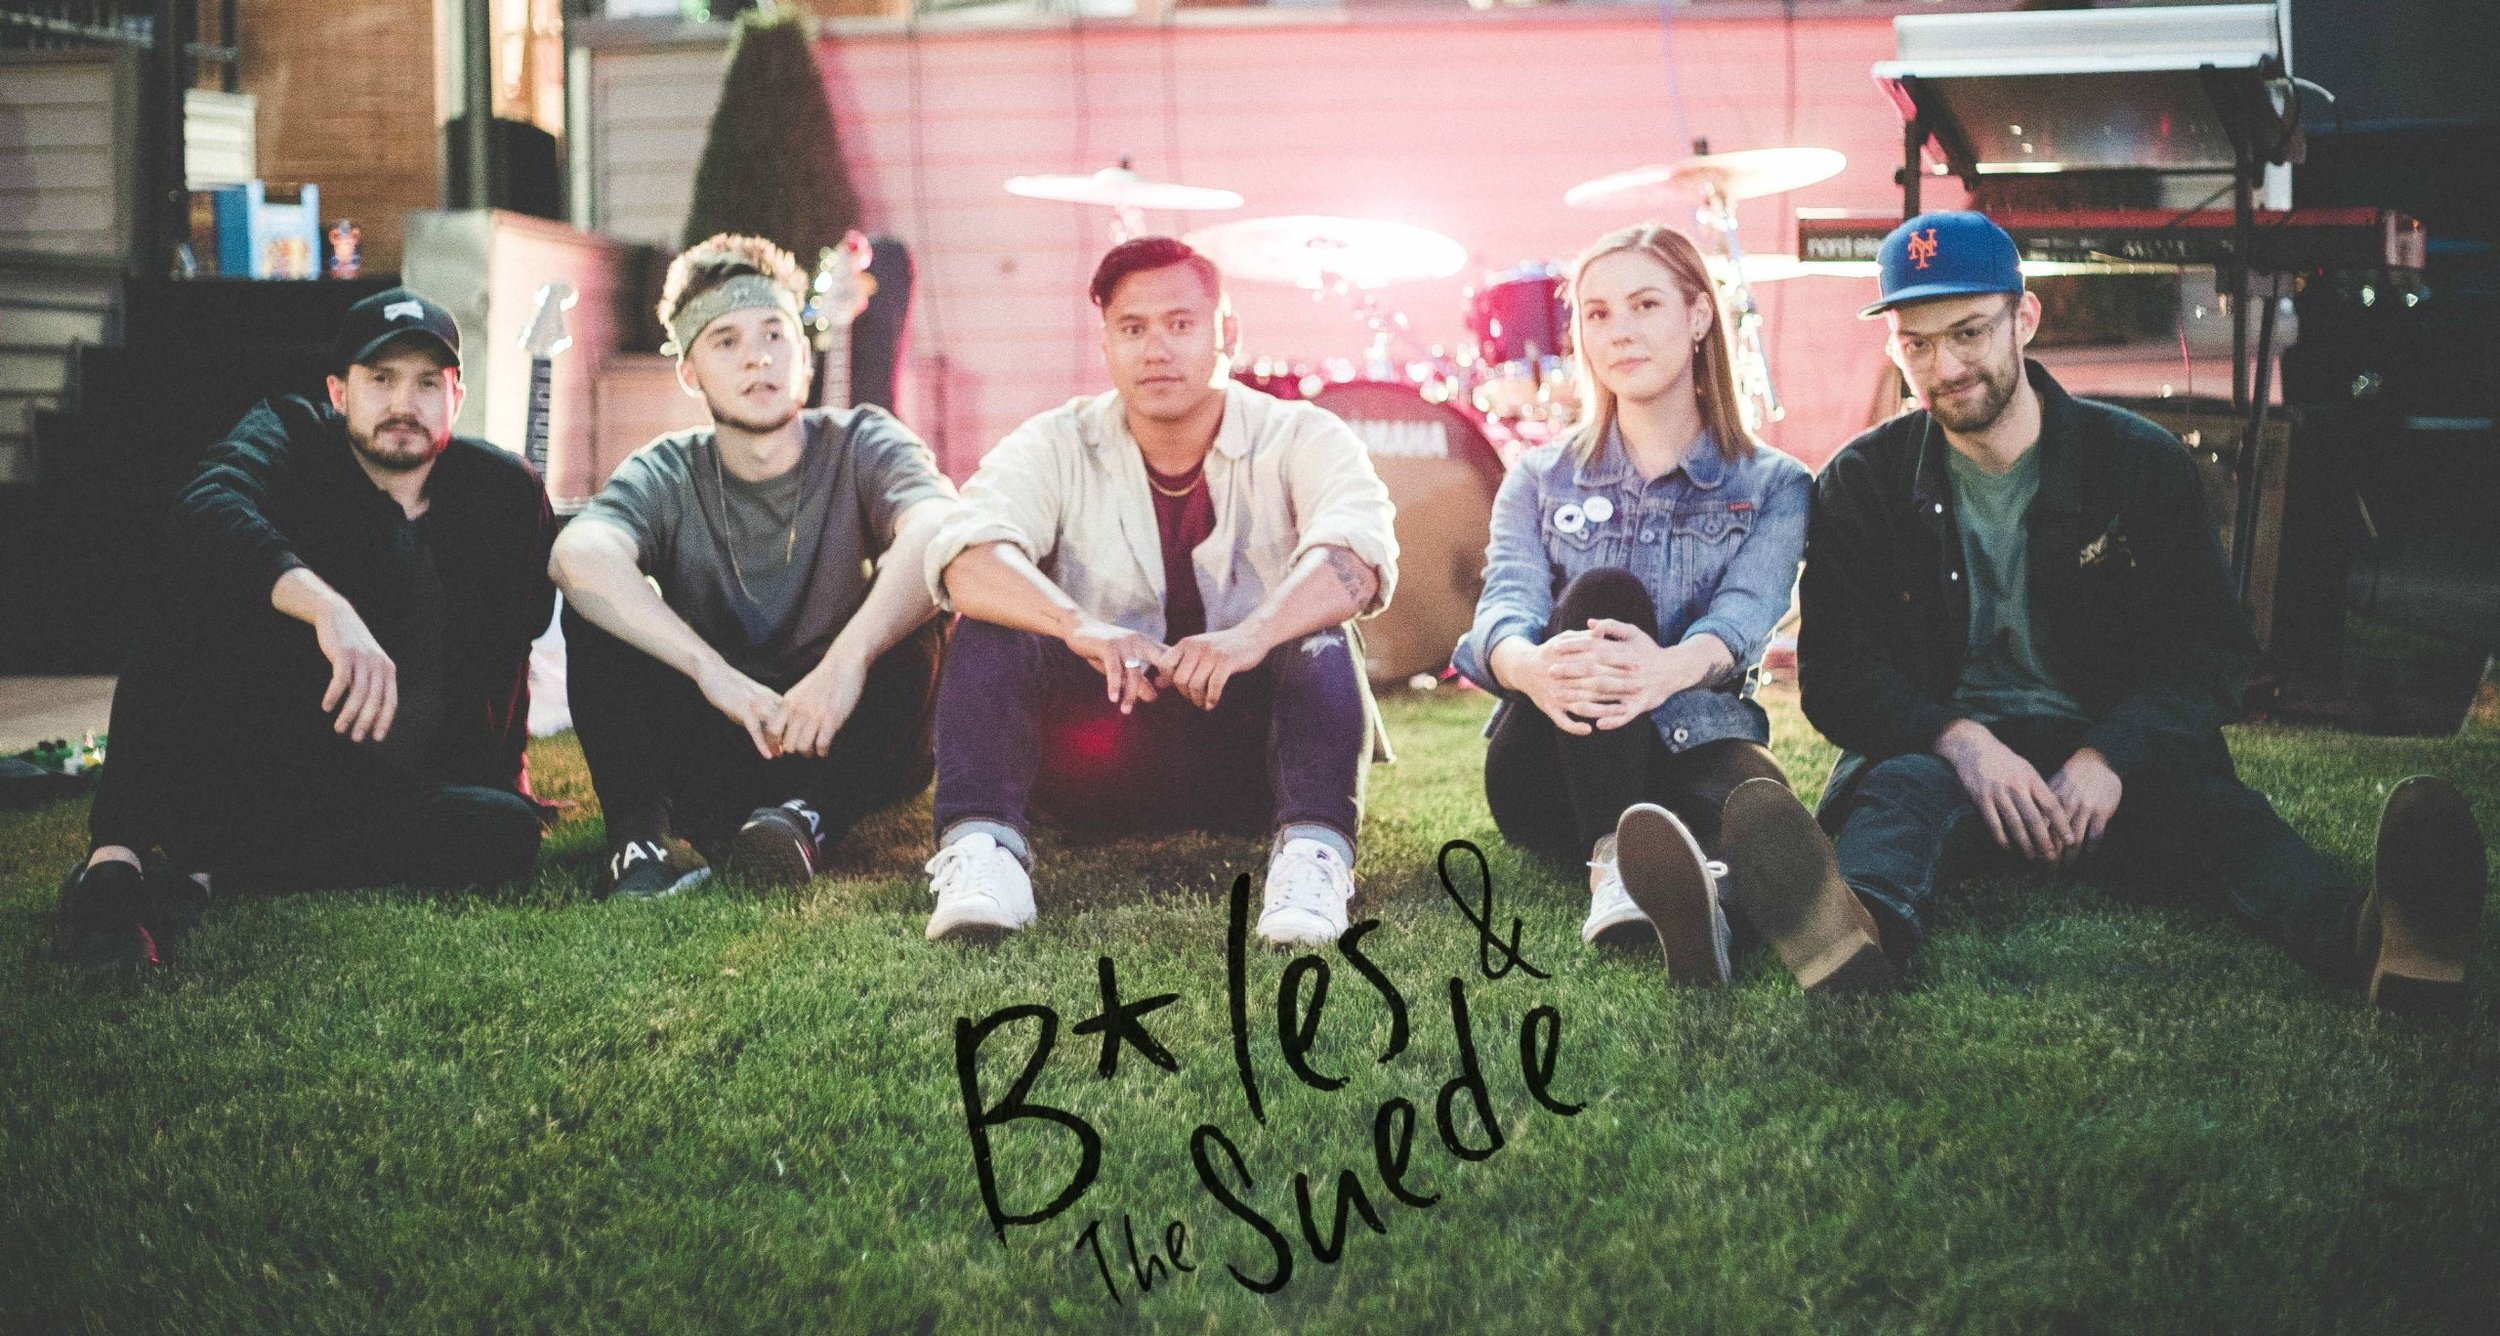 bles-the-suede.jpg